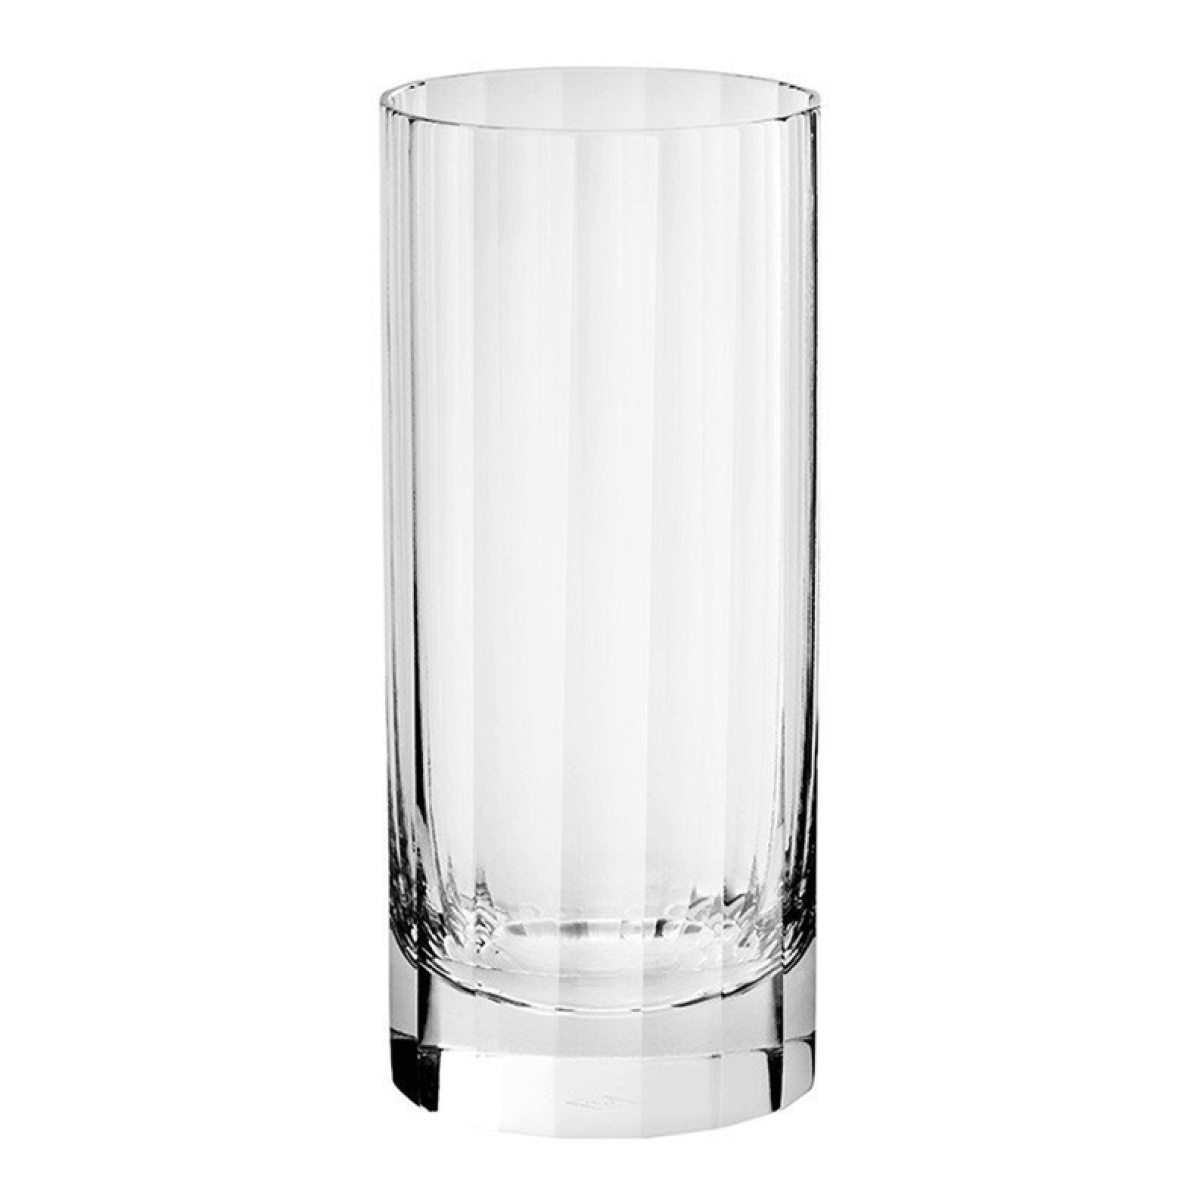 Richard Brendon fluted highball